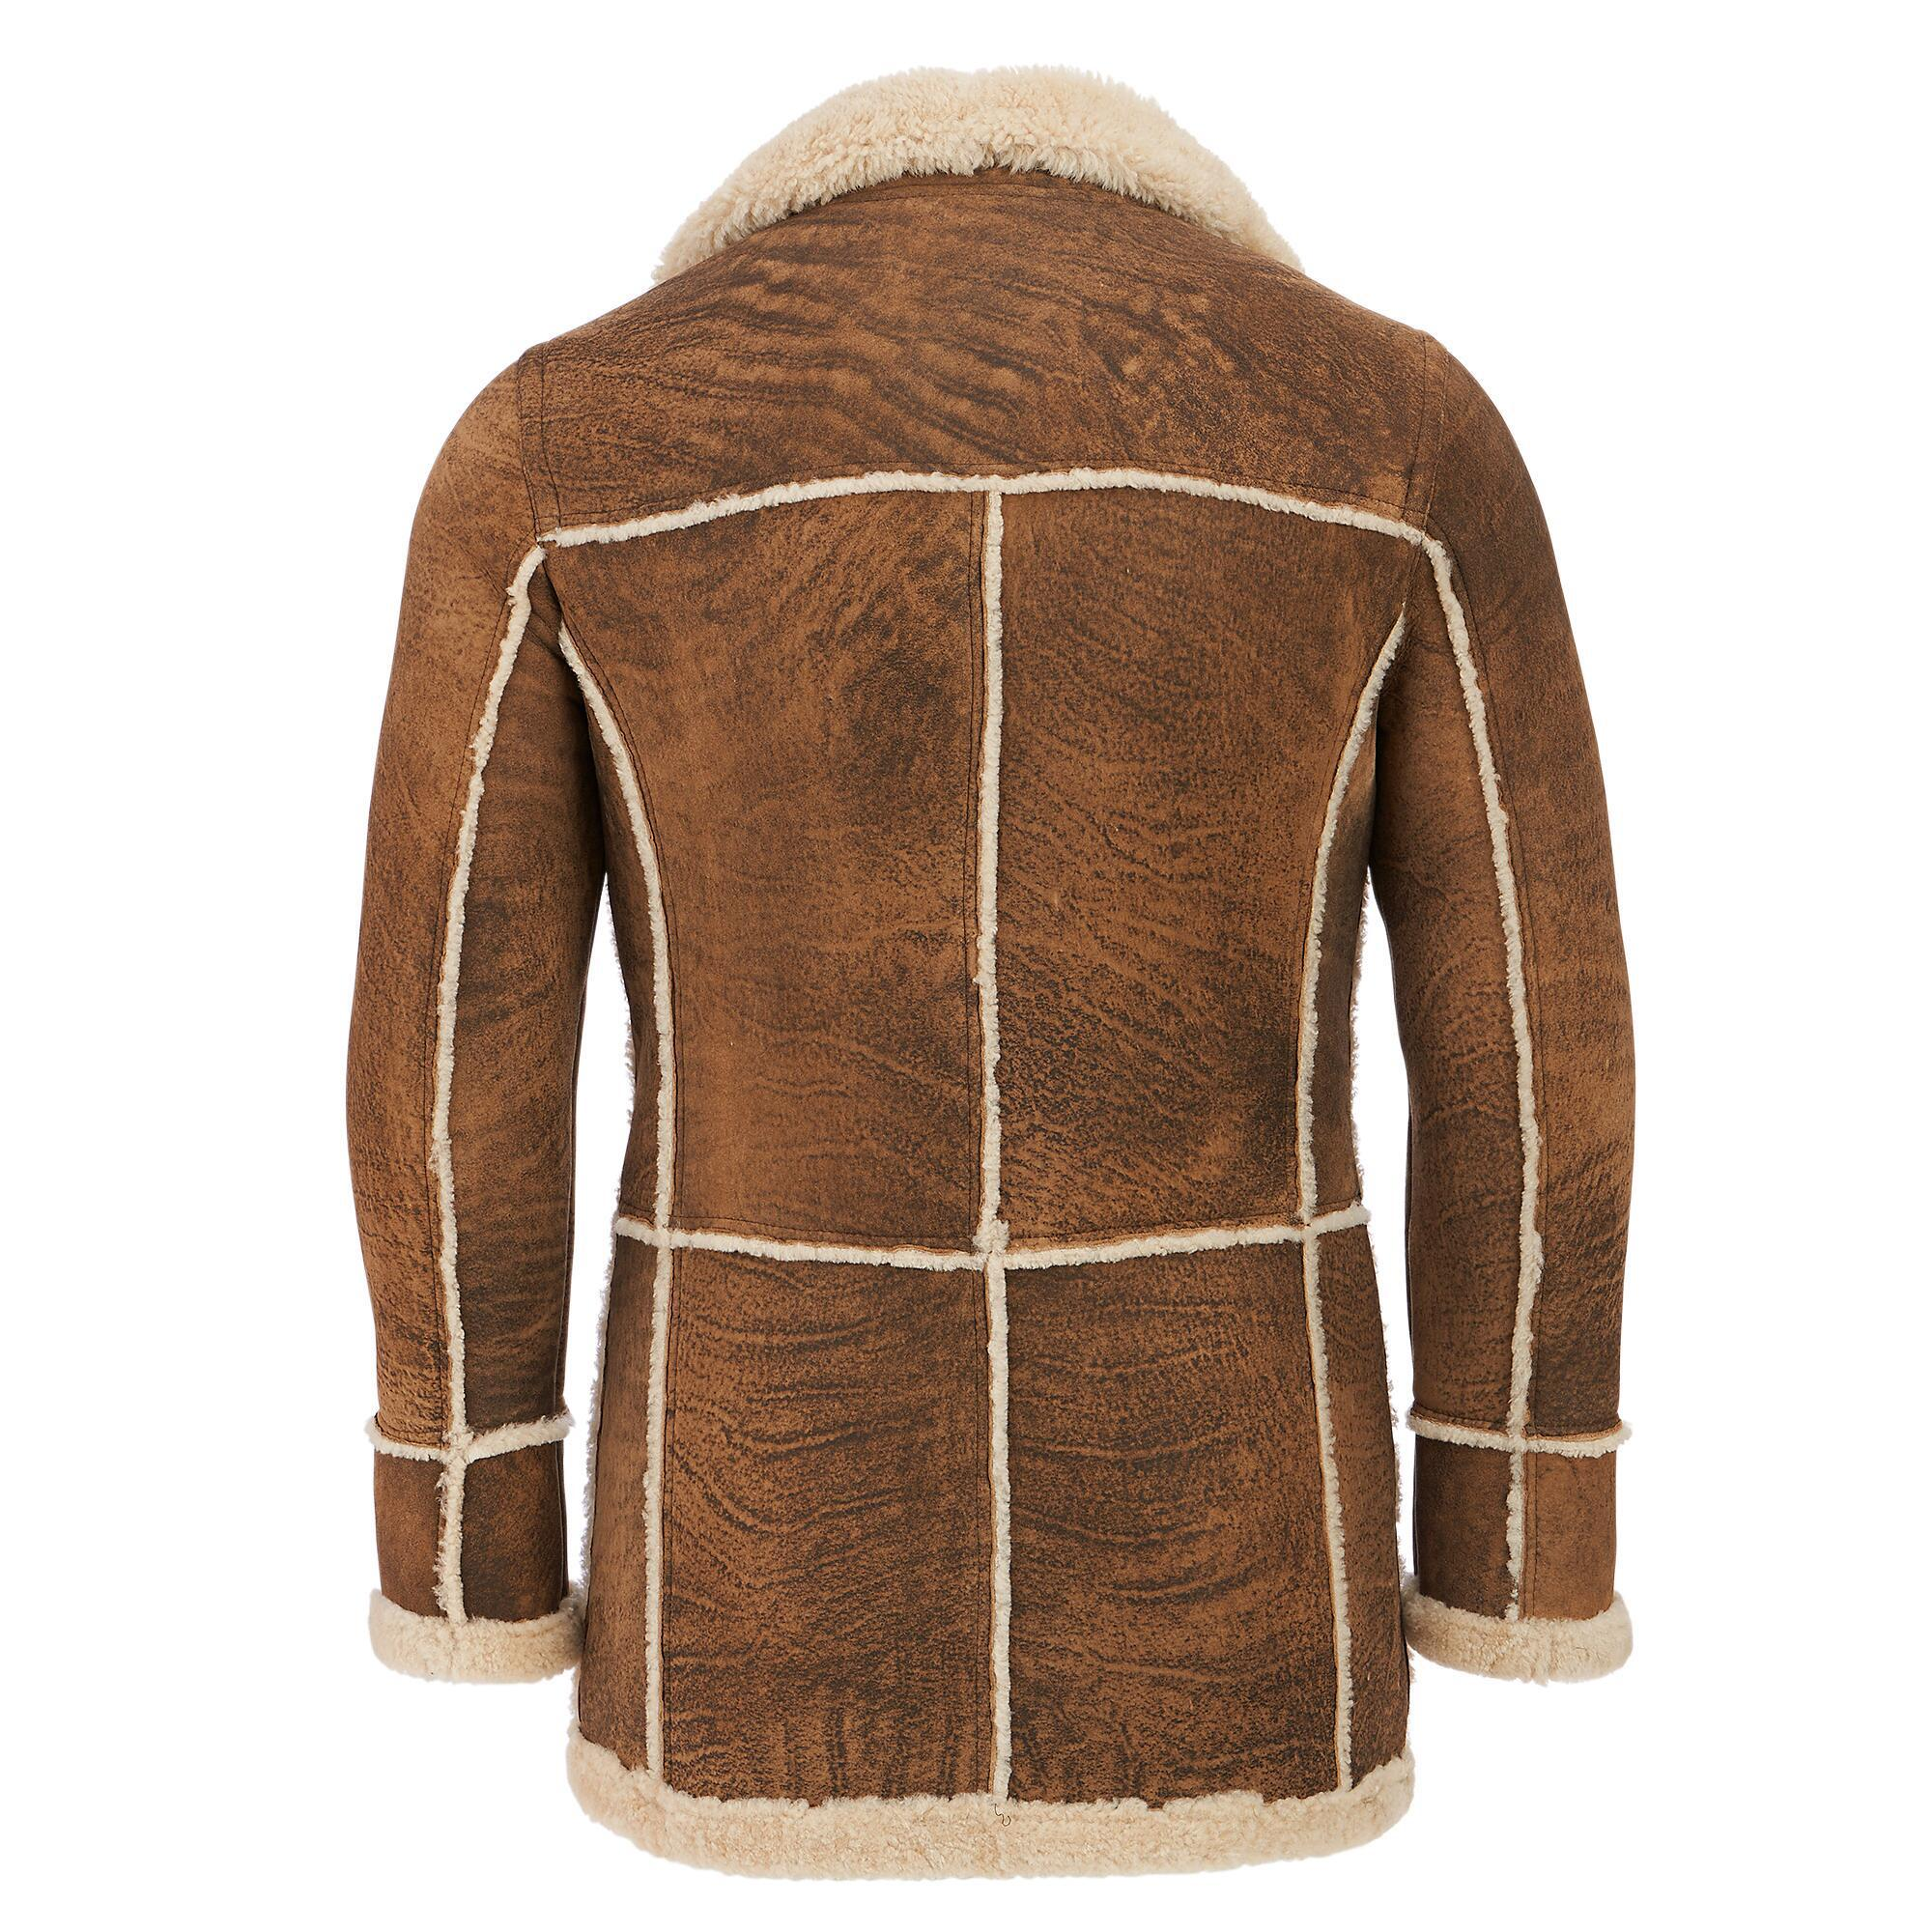 4d4efd005ad7 Wilsons Leather Marlboro Shearling Leather Jacket in Brown for Men ...